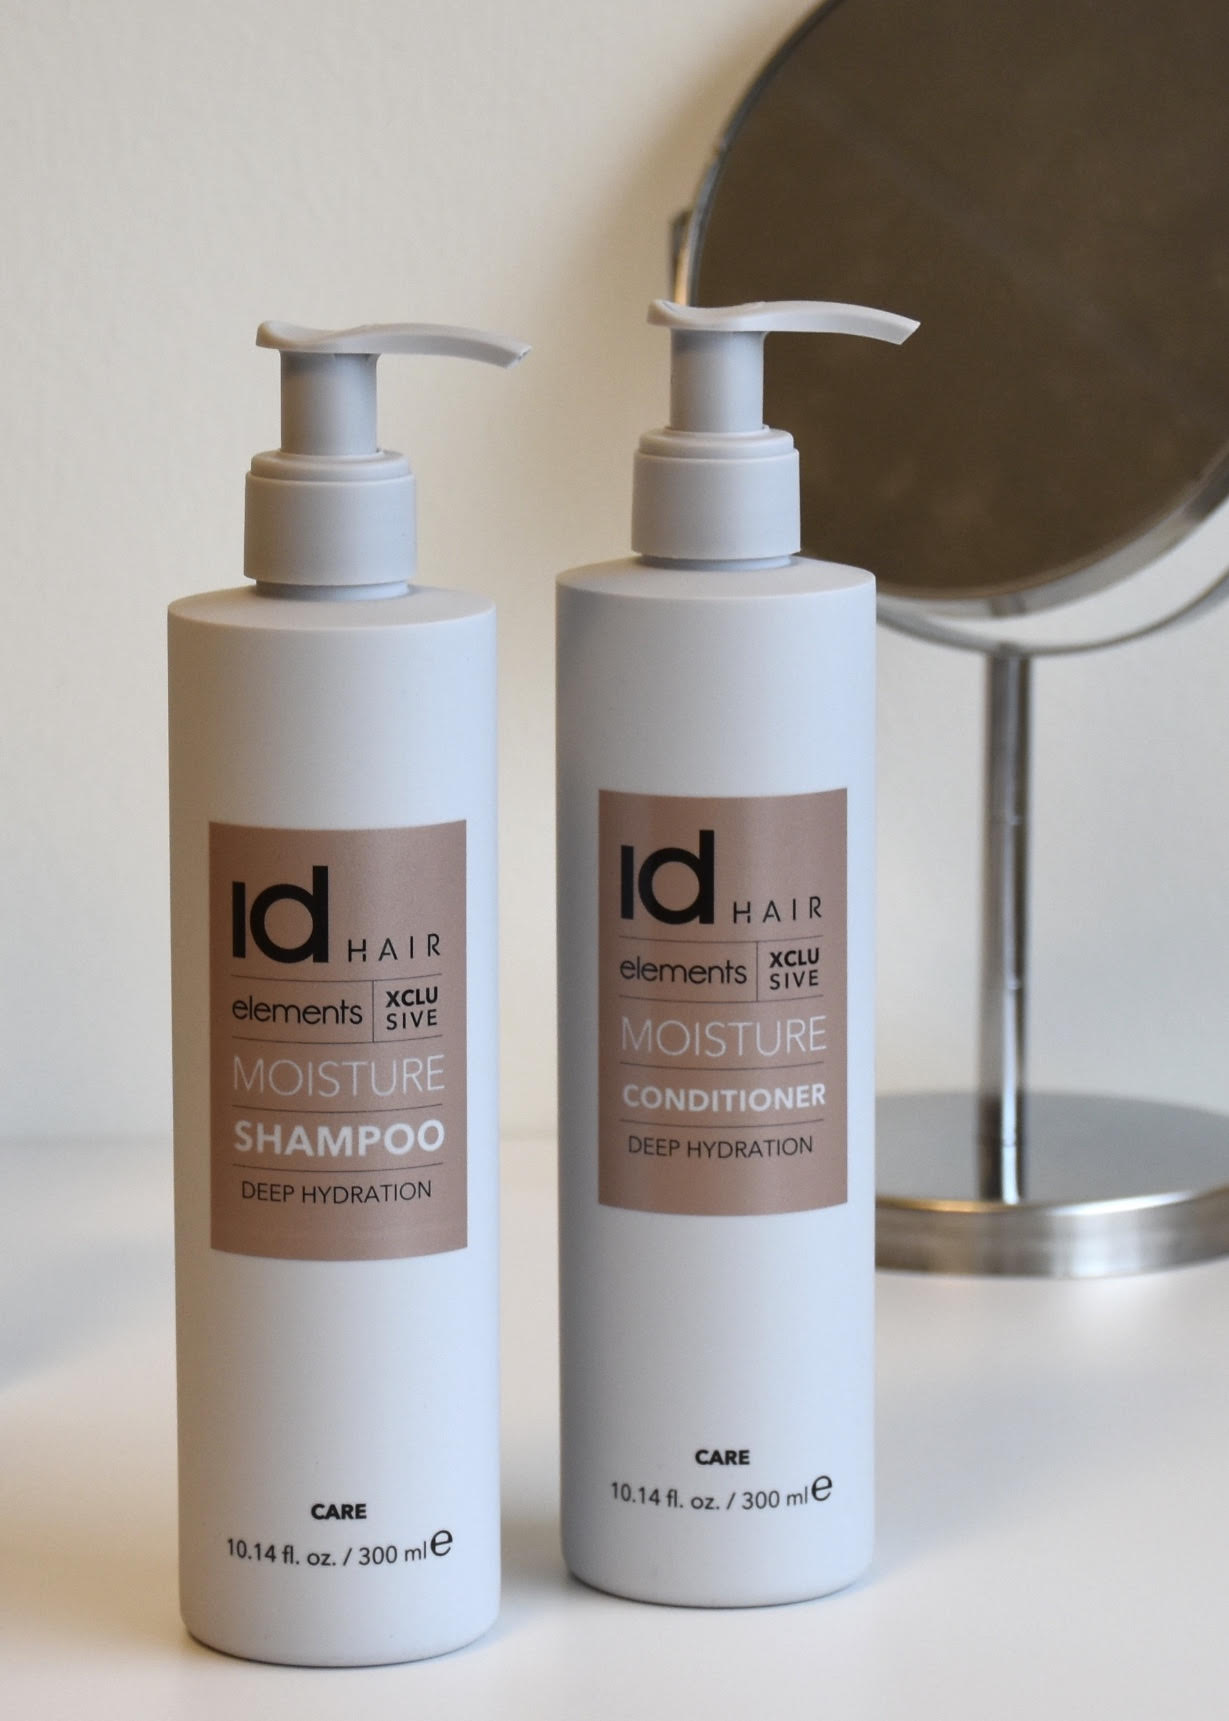 Id Hair, Elements Xclusive, hårpleje, shampoo, conditioner, styling, børste